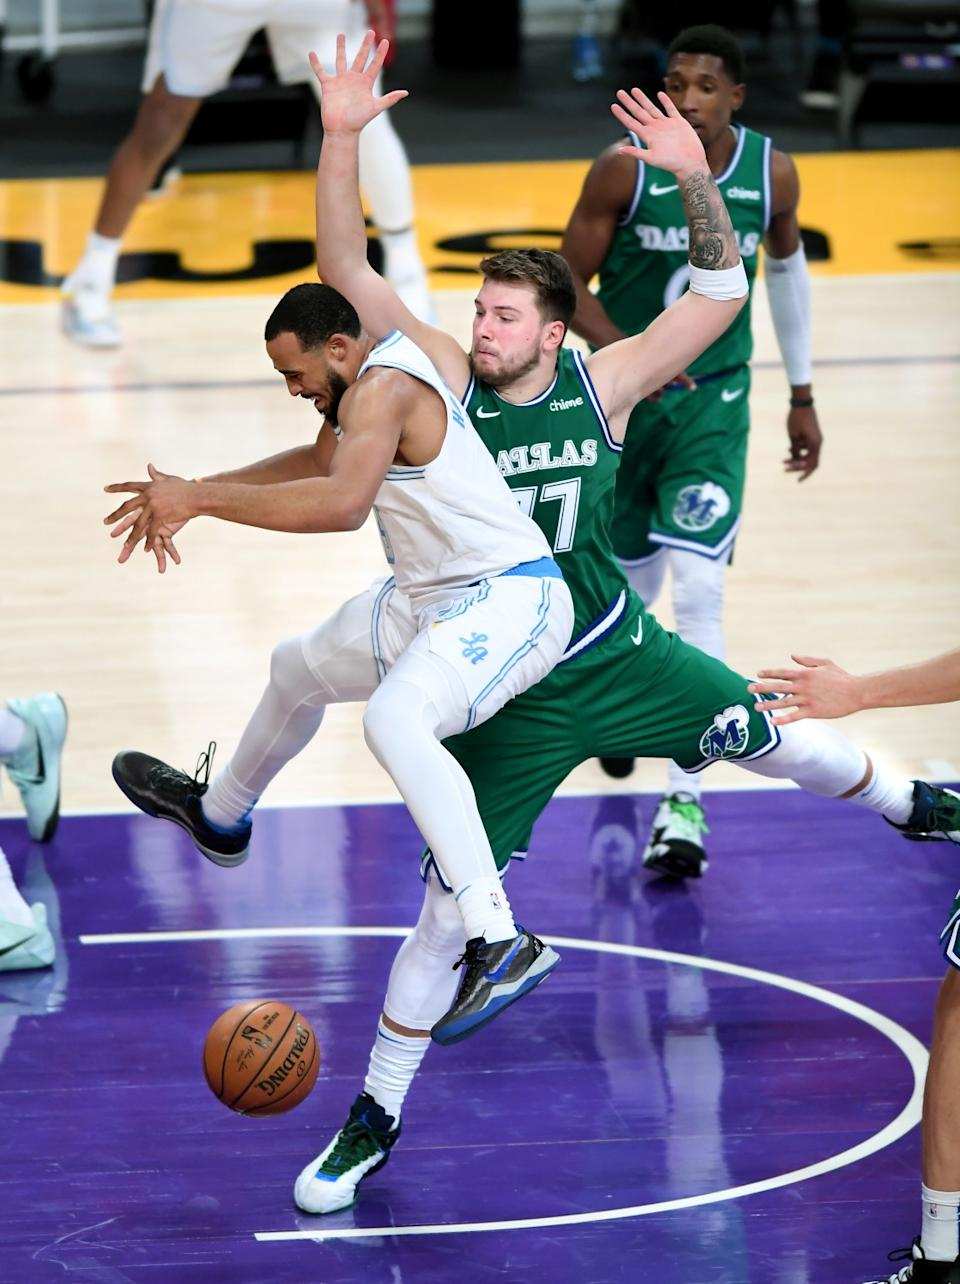 Lakers guard Talen Horton-Tucker loses the ball in front of Mavericks guard Luka Doncic during the second quarter.